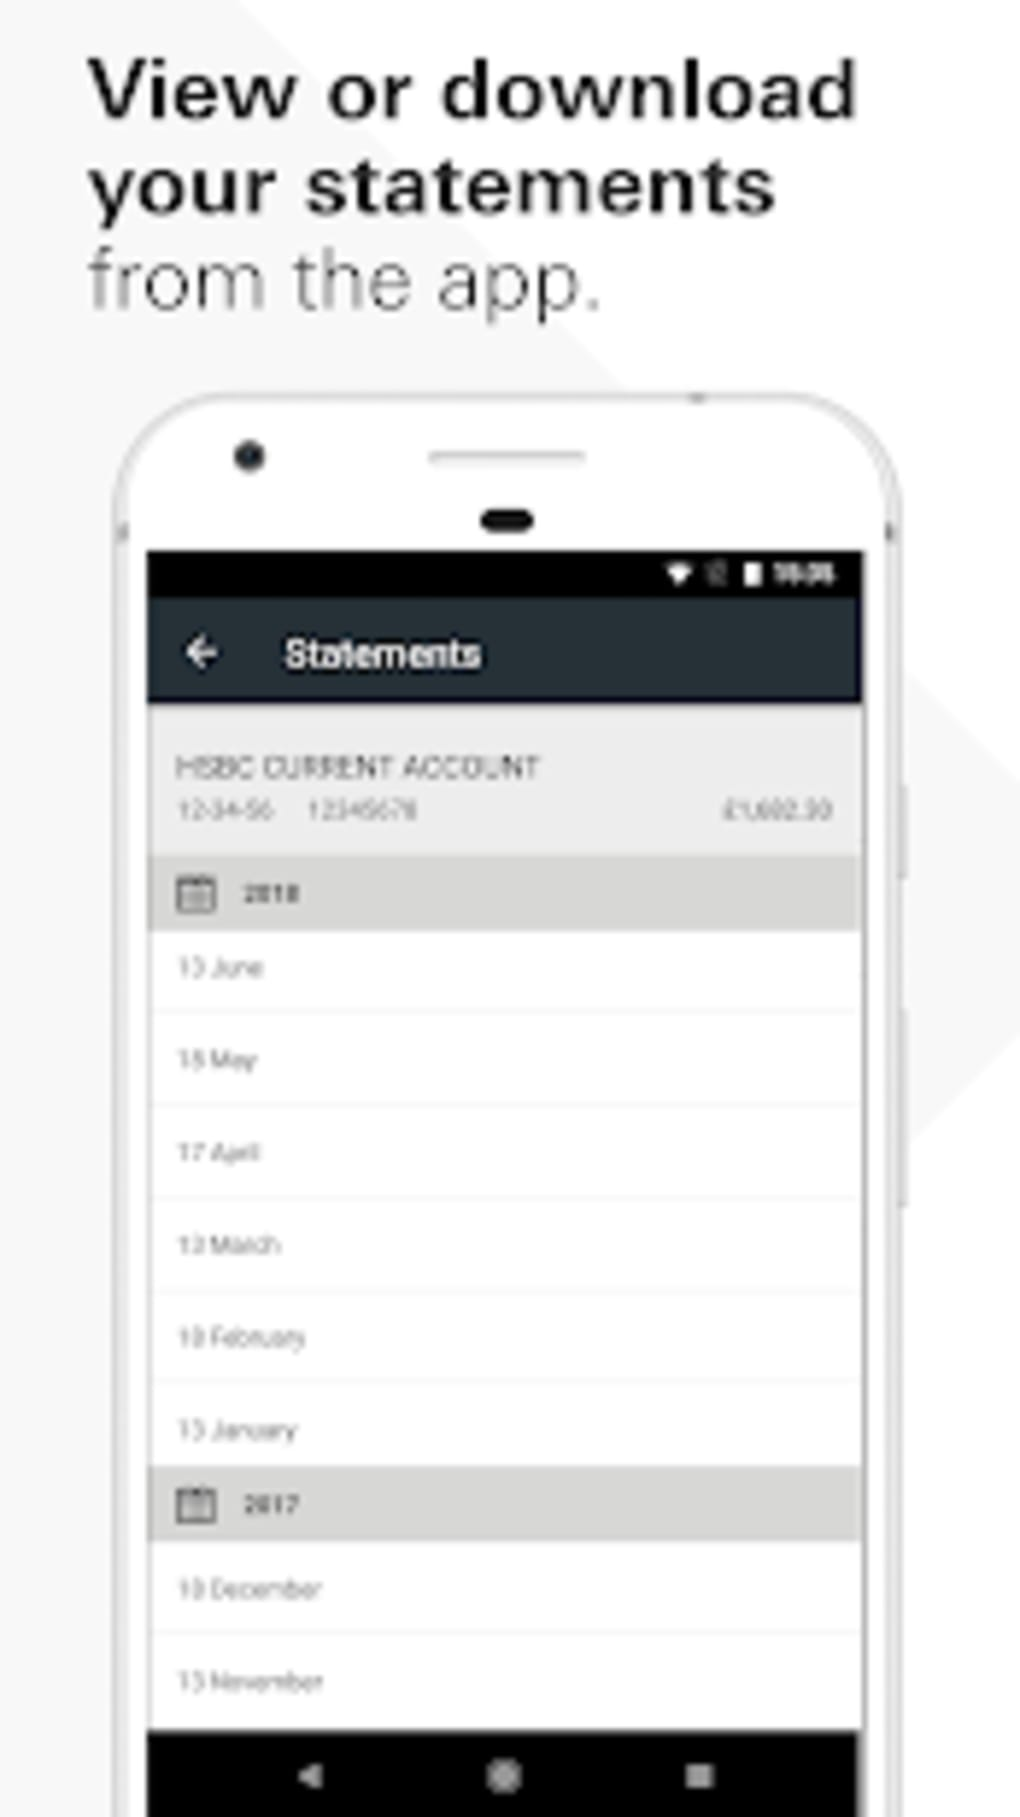 HSBC UK Mobile Banking for Android - Download